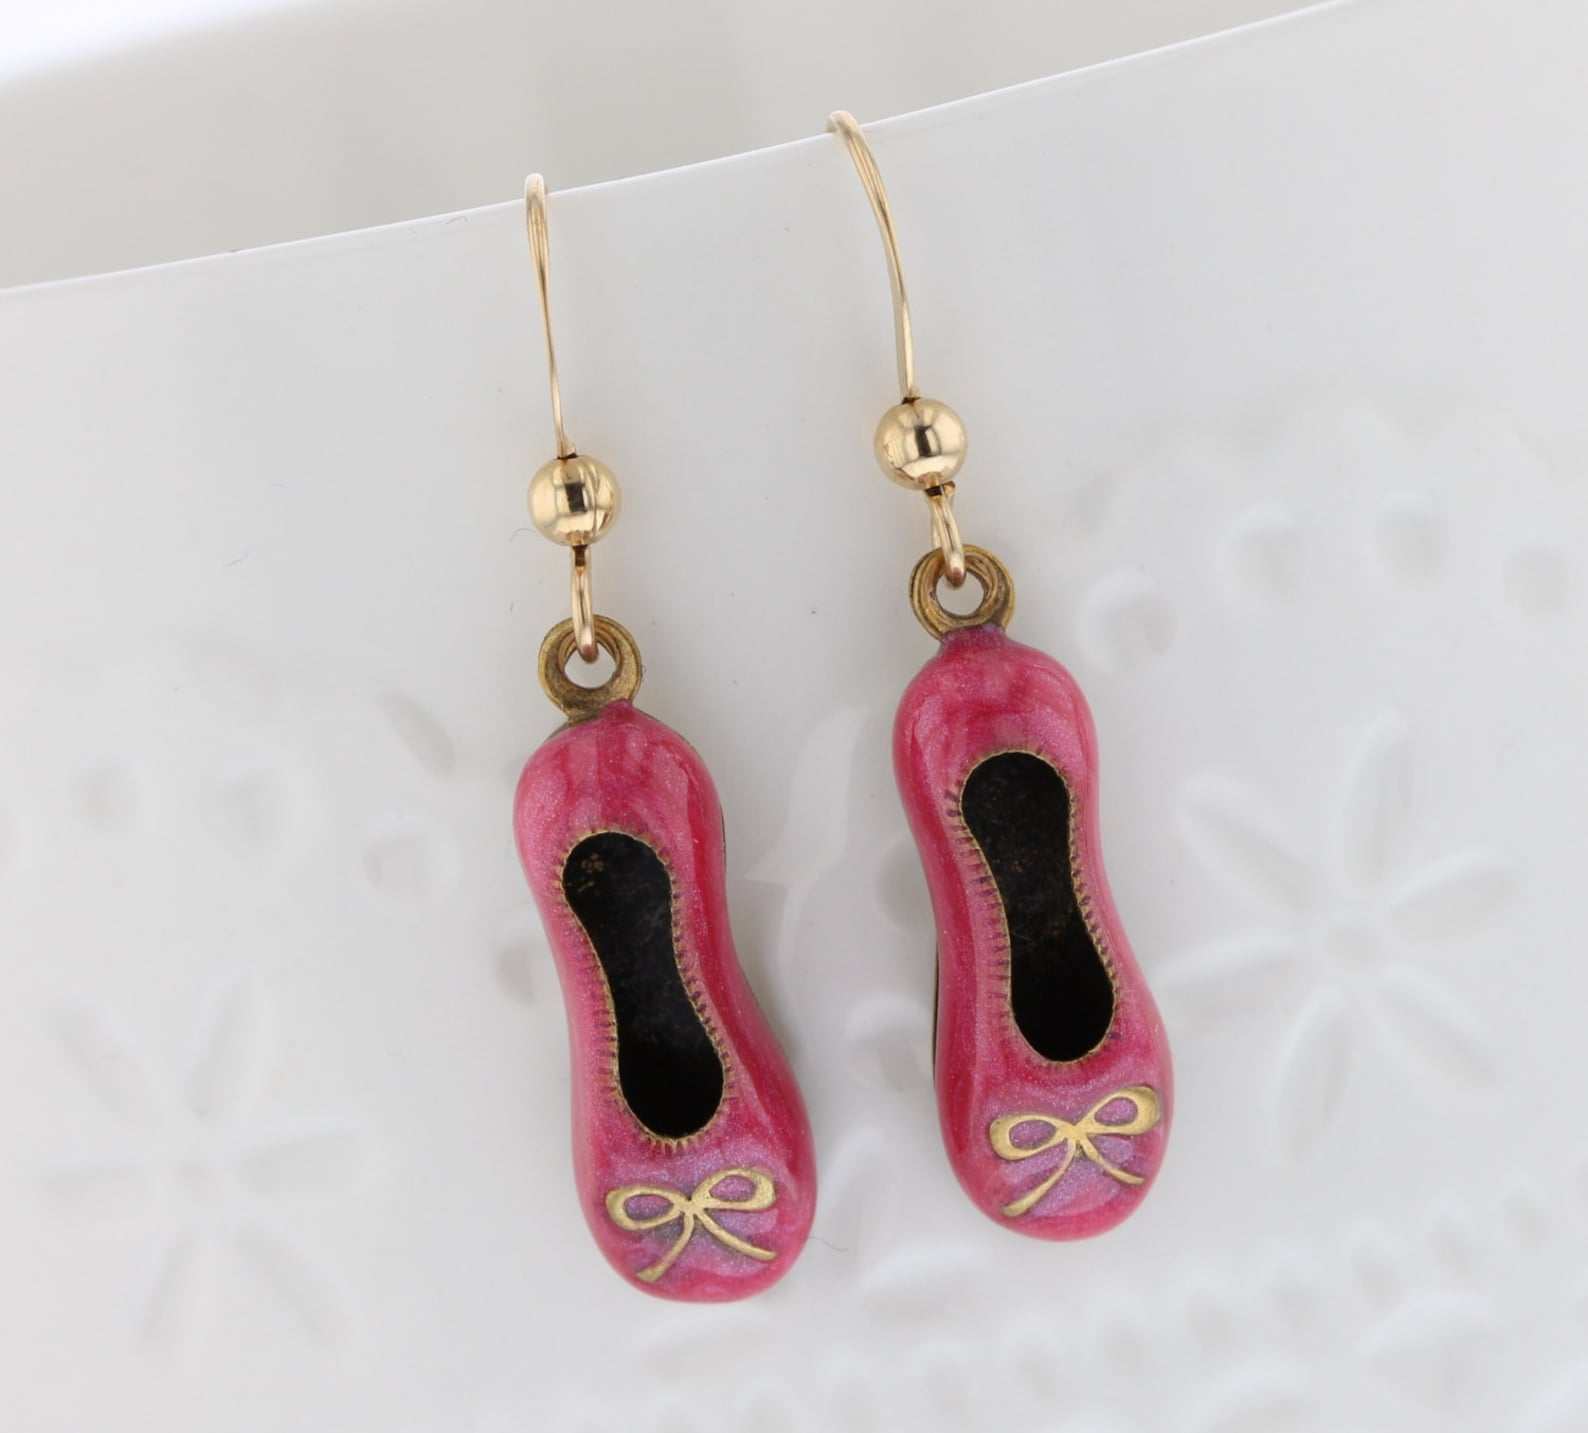 ballet flats shoe earrings. hand enameled pink over brass. 14kt gold-filled ear wires. dangle earrings, pink, shoes, dance, danc